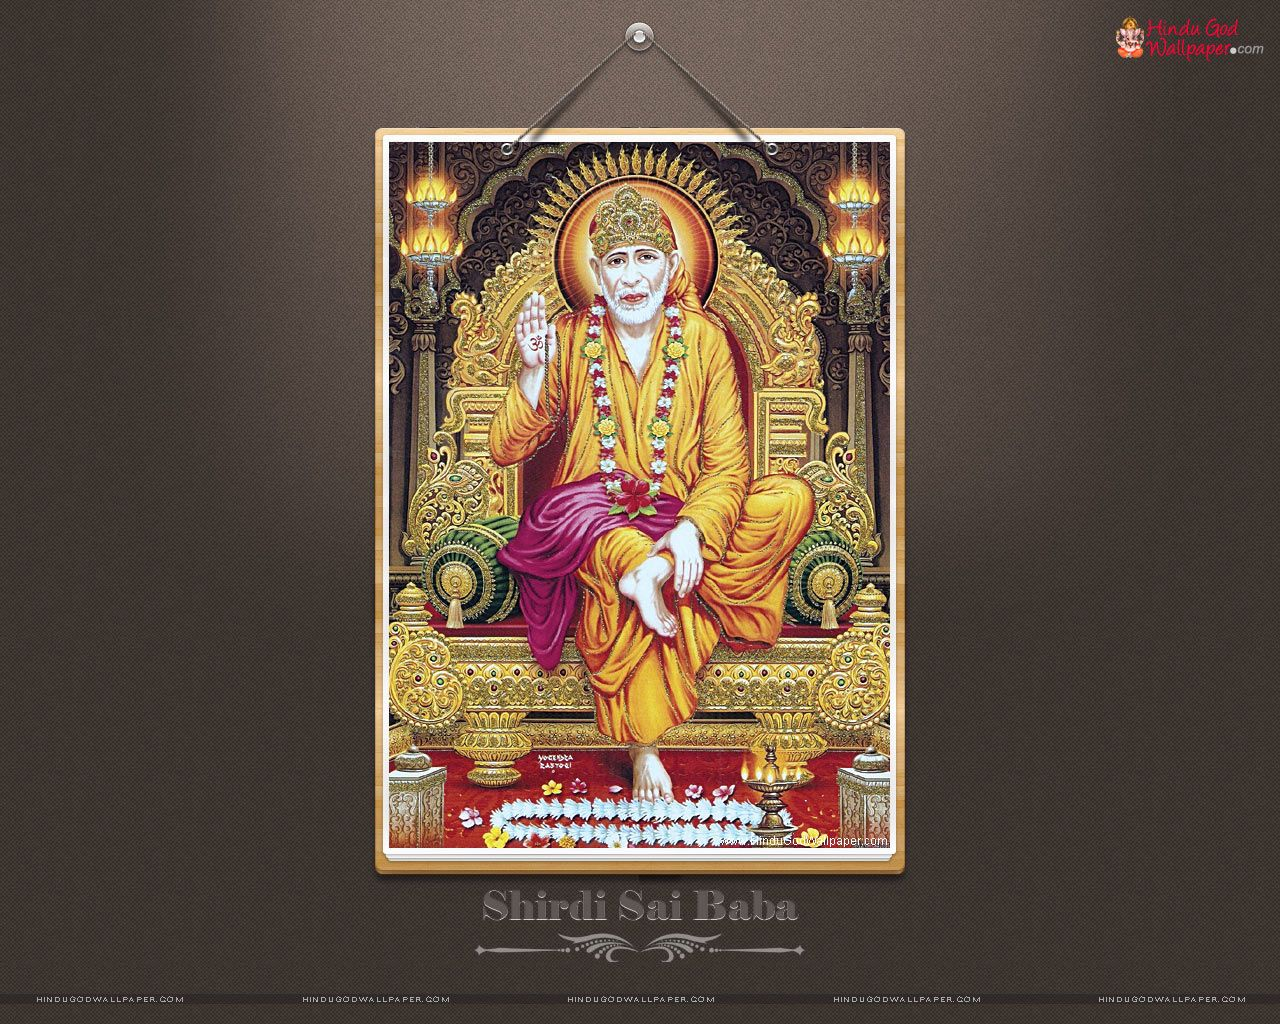 Shirdi Sai Baba Hd Wallpapers Full Size Download Saibaba